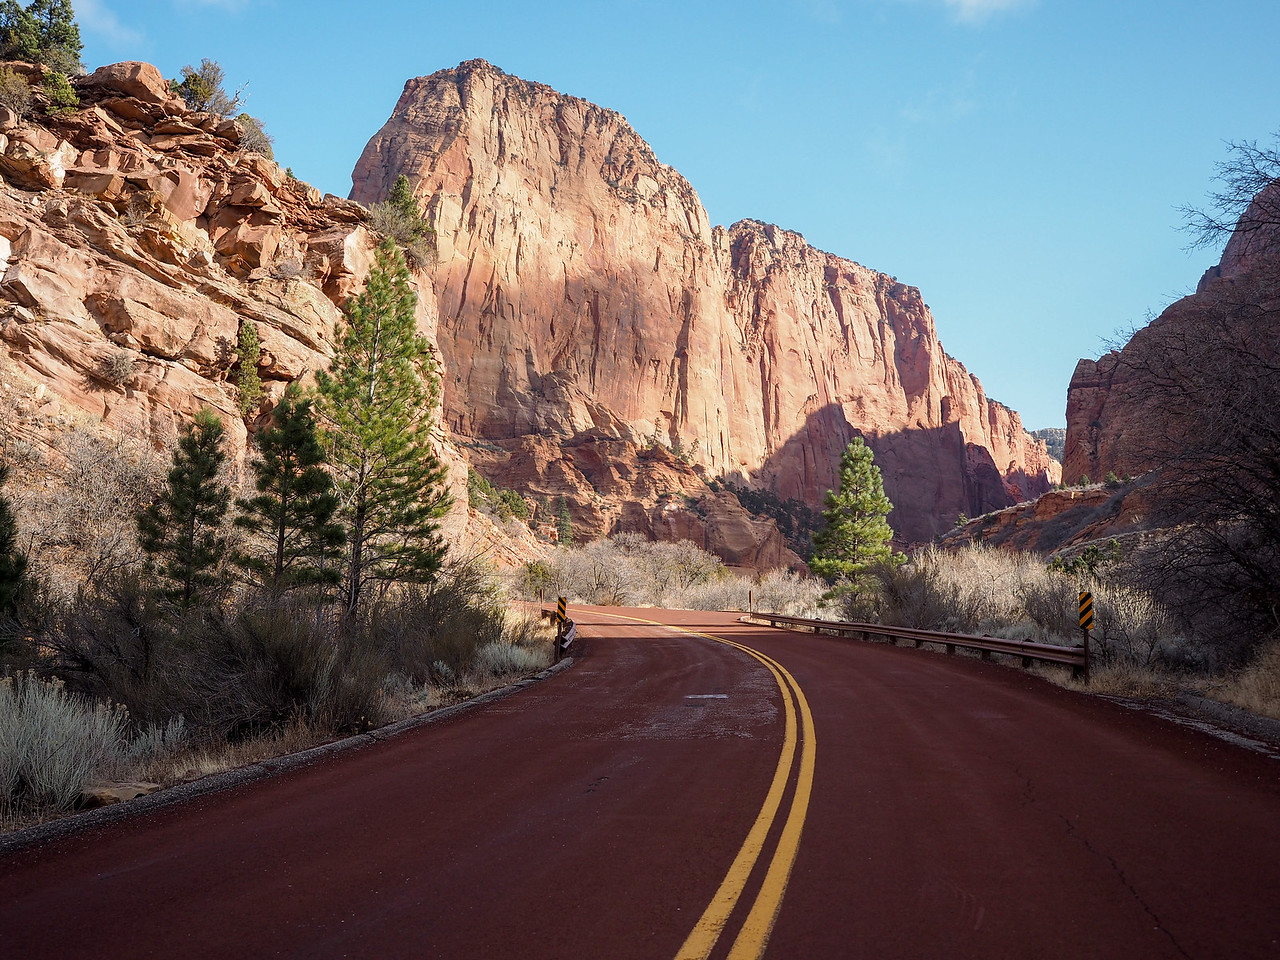 Driving through Kolob Canyons at Zion National Park